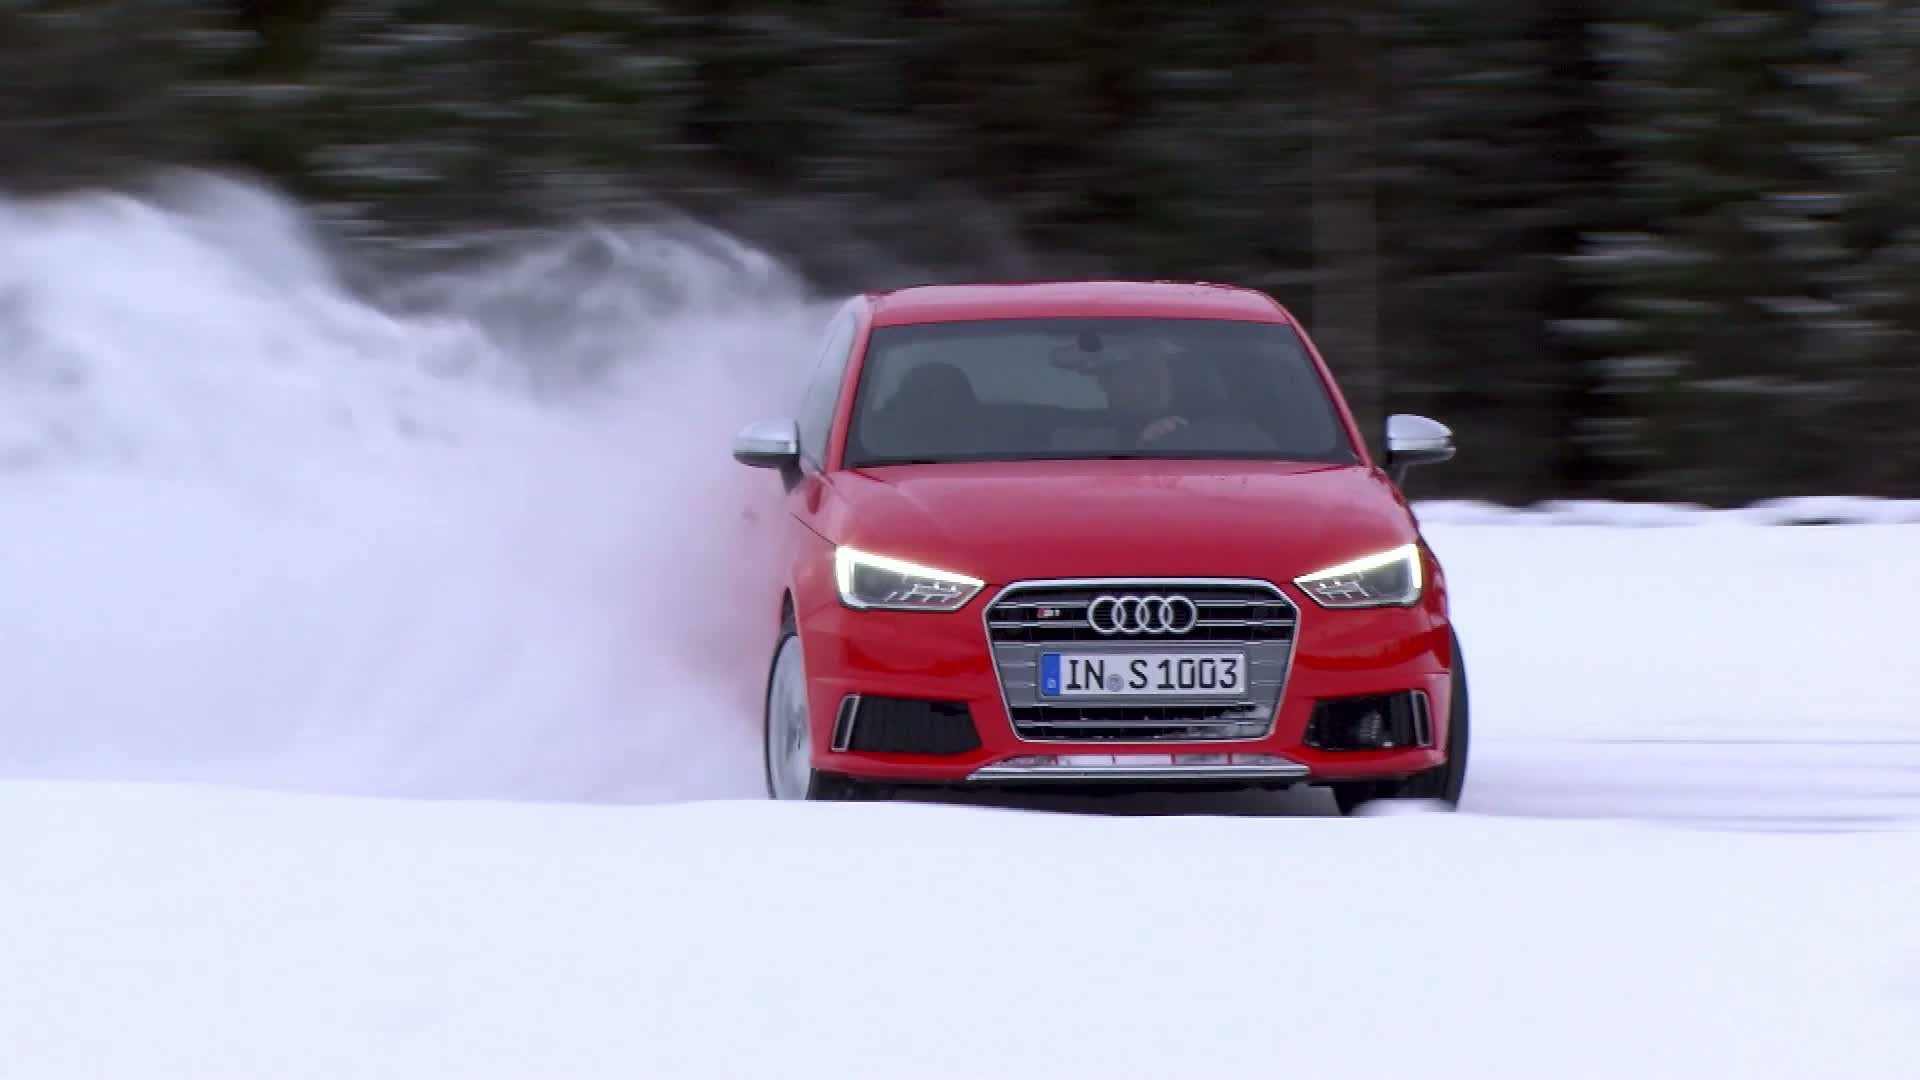 Tomorrow at Audi MediaTV - The Audi quattro story part 3